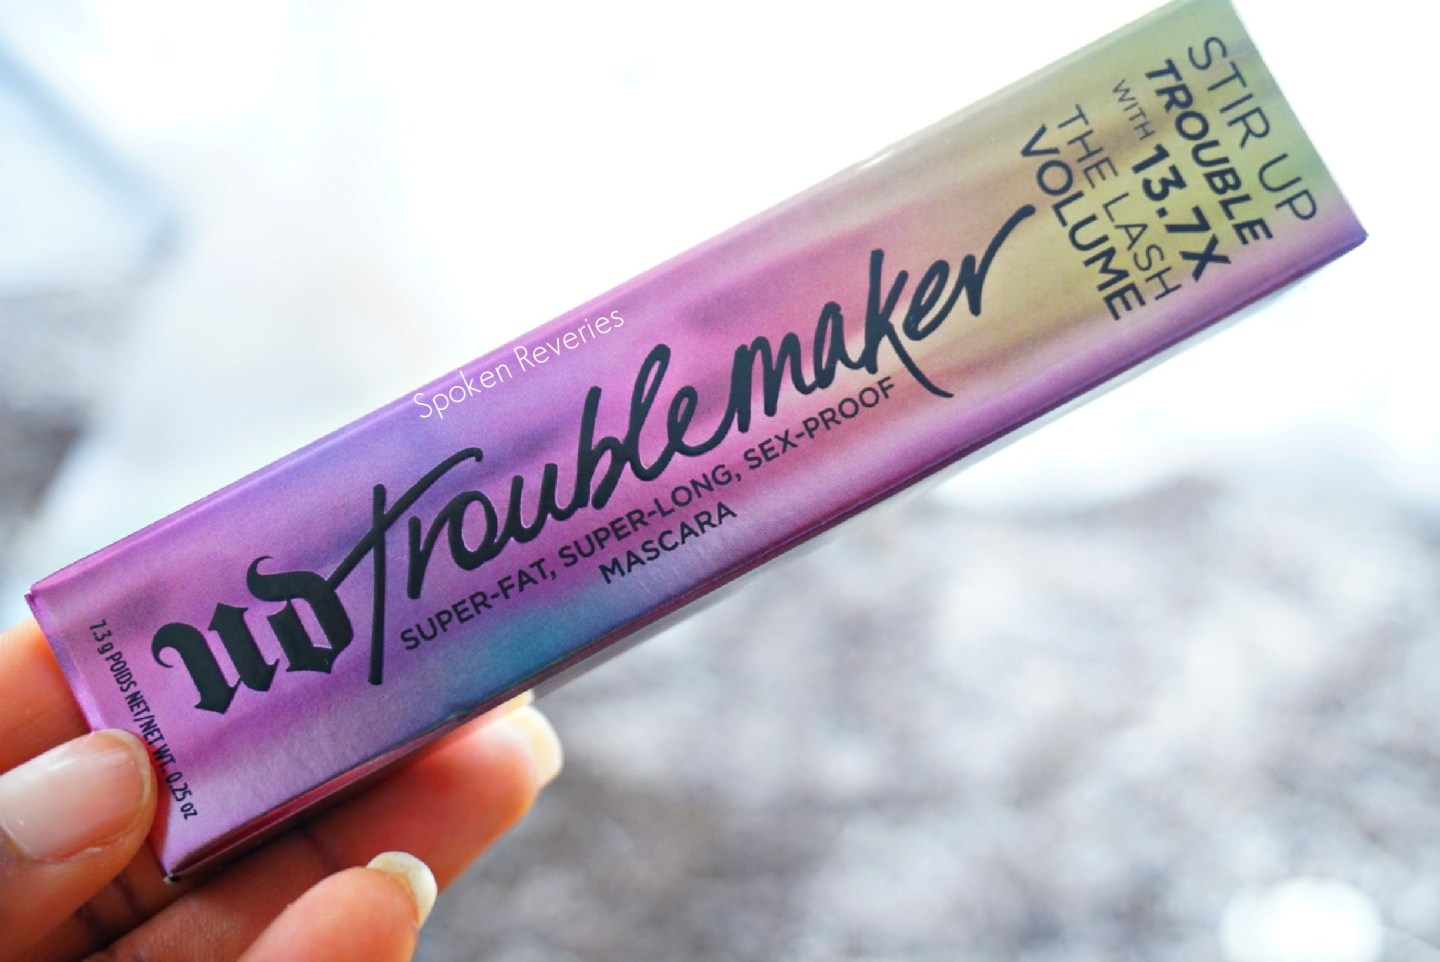 Is it really sex-proof?! Urban Decay Troublemaker Mascara